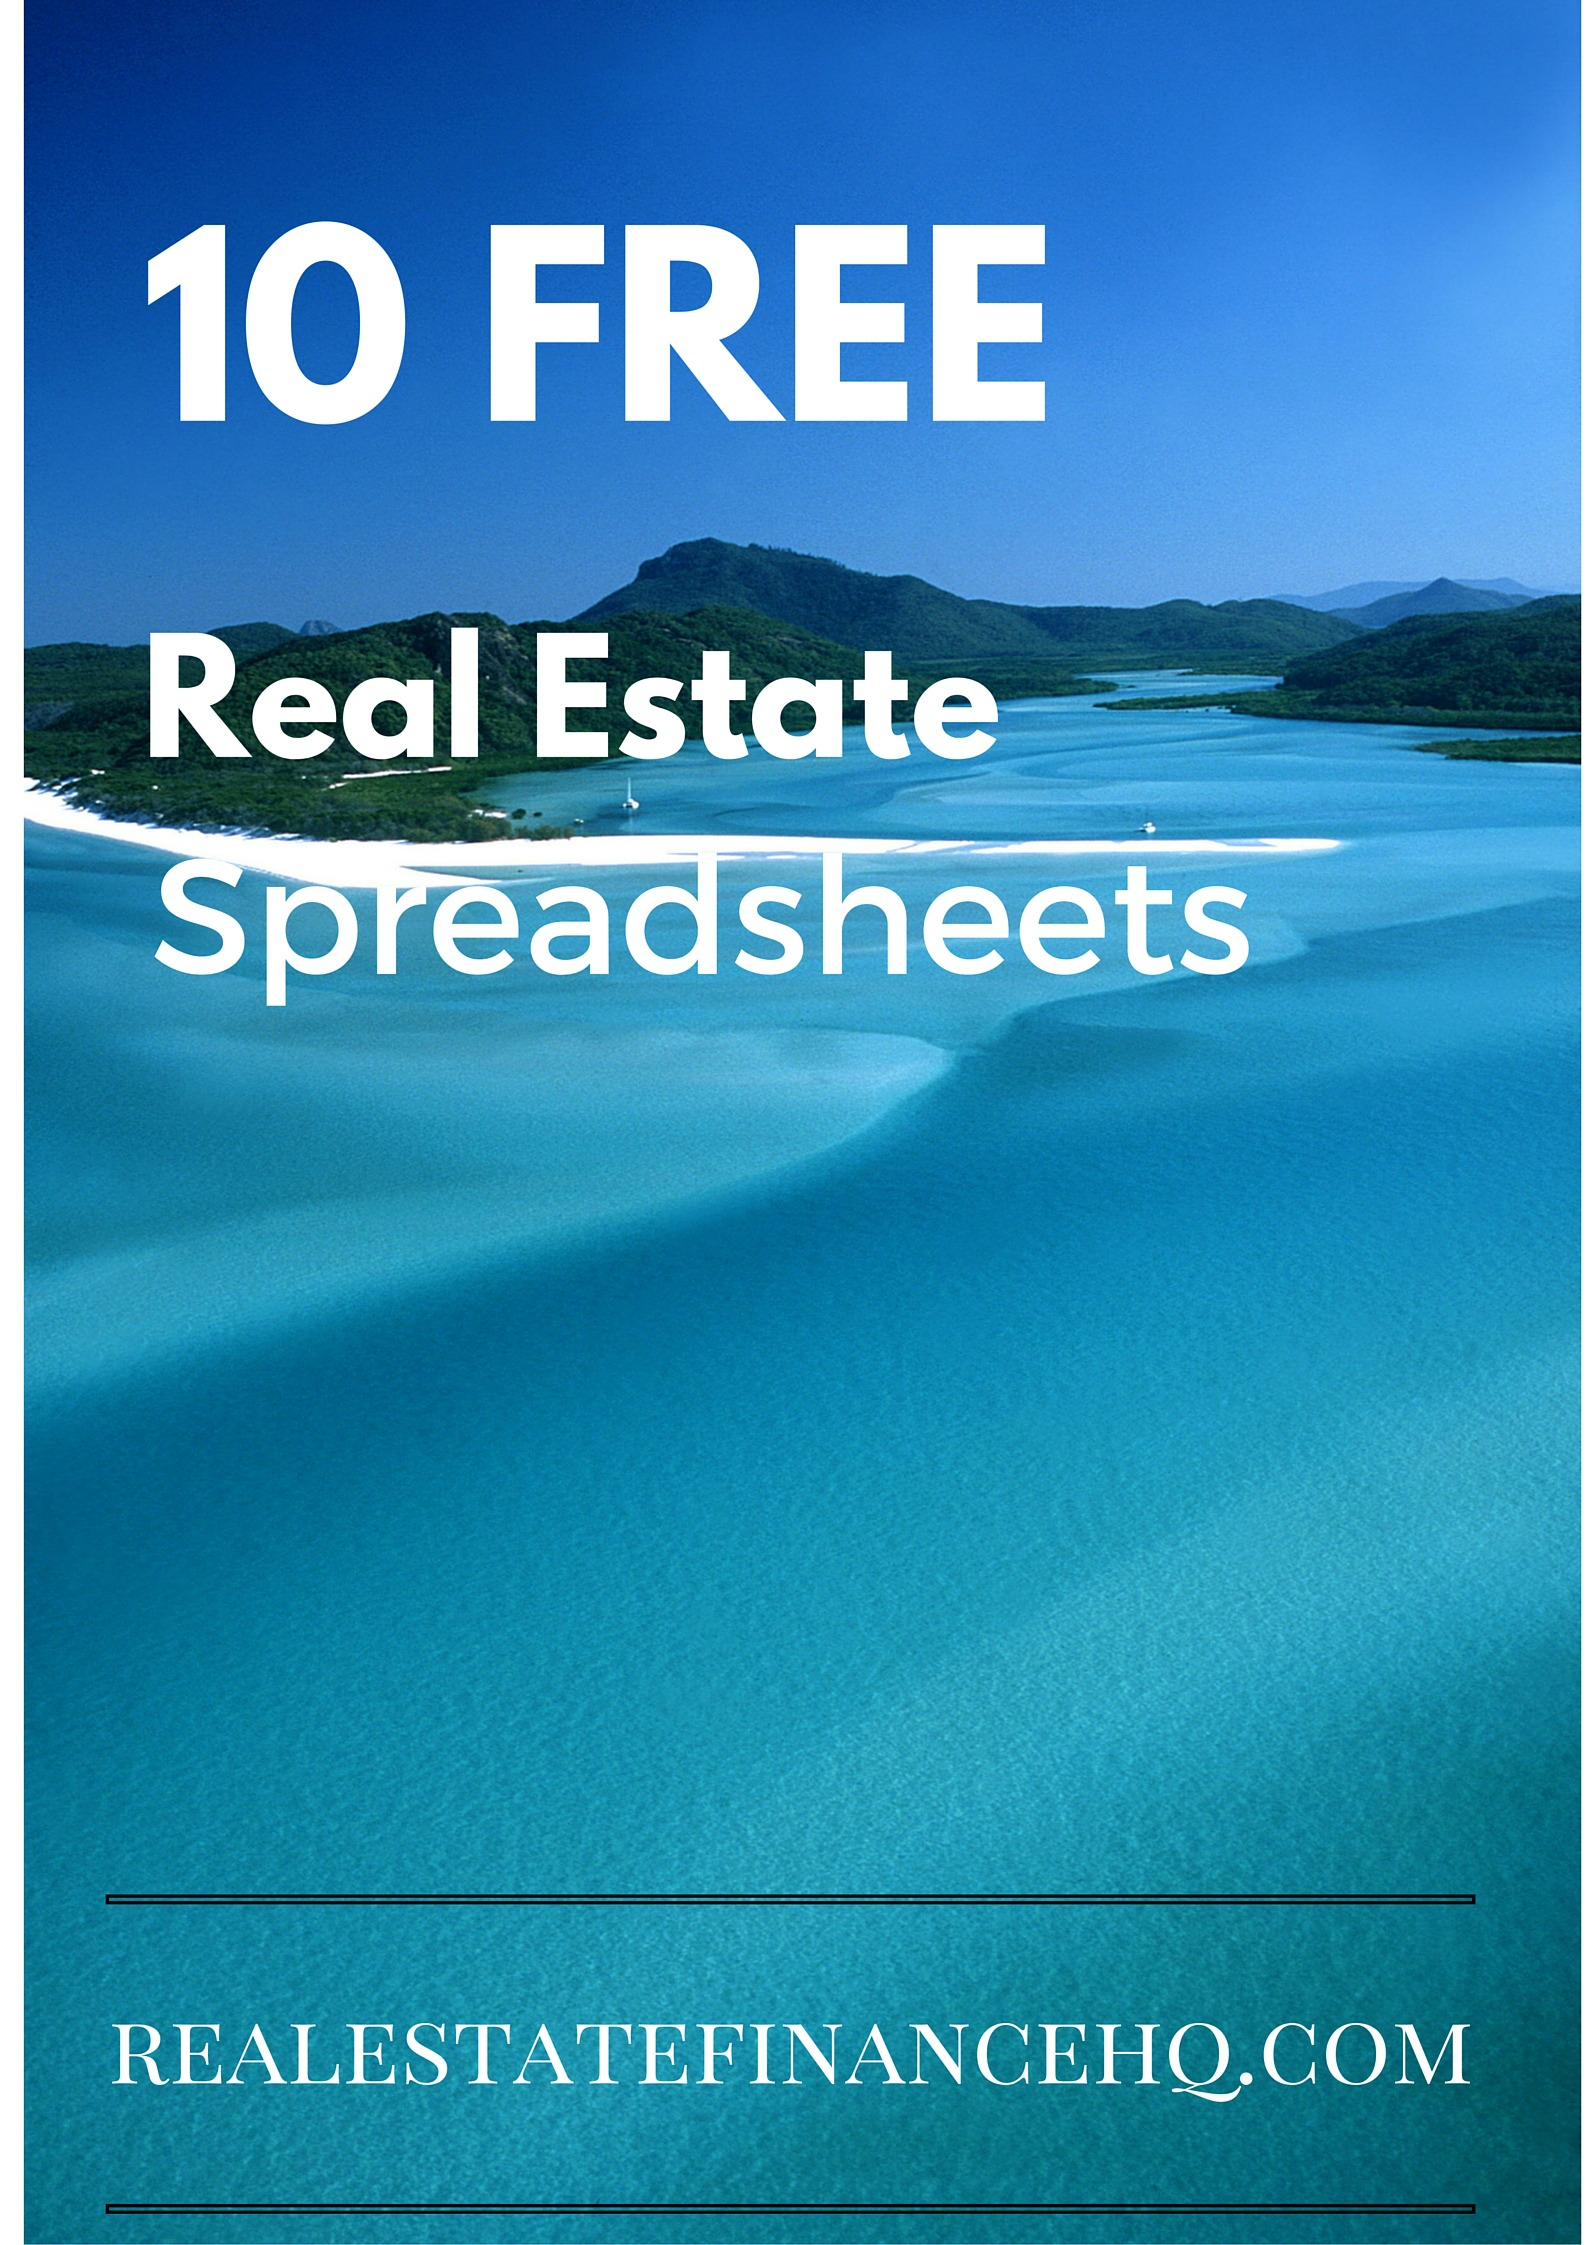 Rental Income Property Analysis Excel Spreadsheet With 10 Free Real Estate Spreadsheets  Real Estate Finance